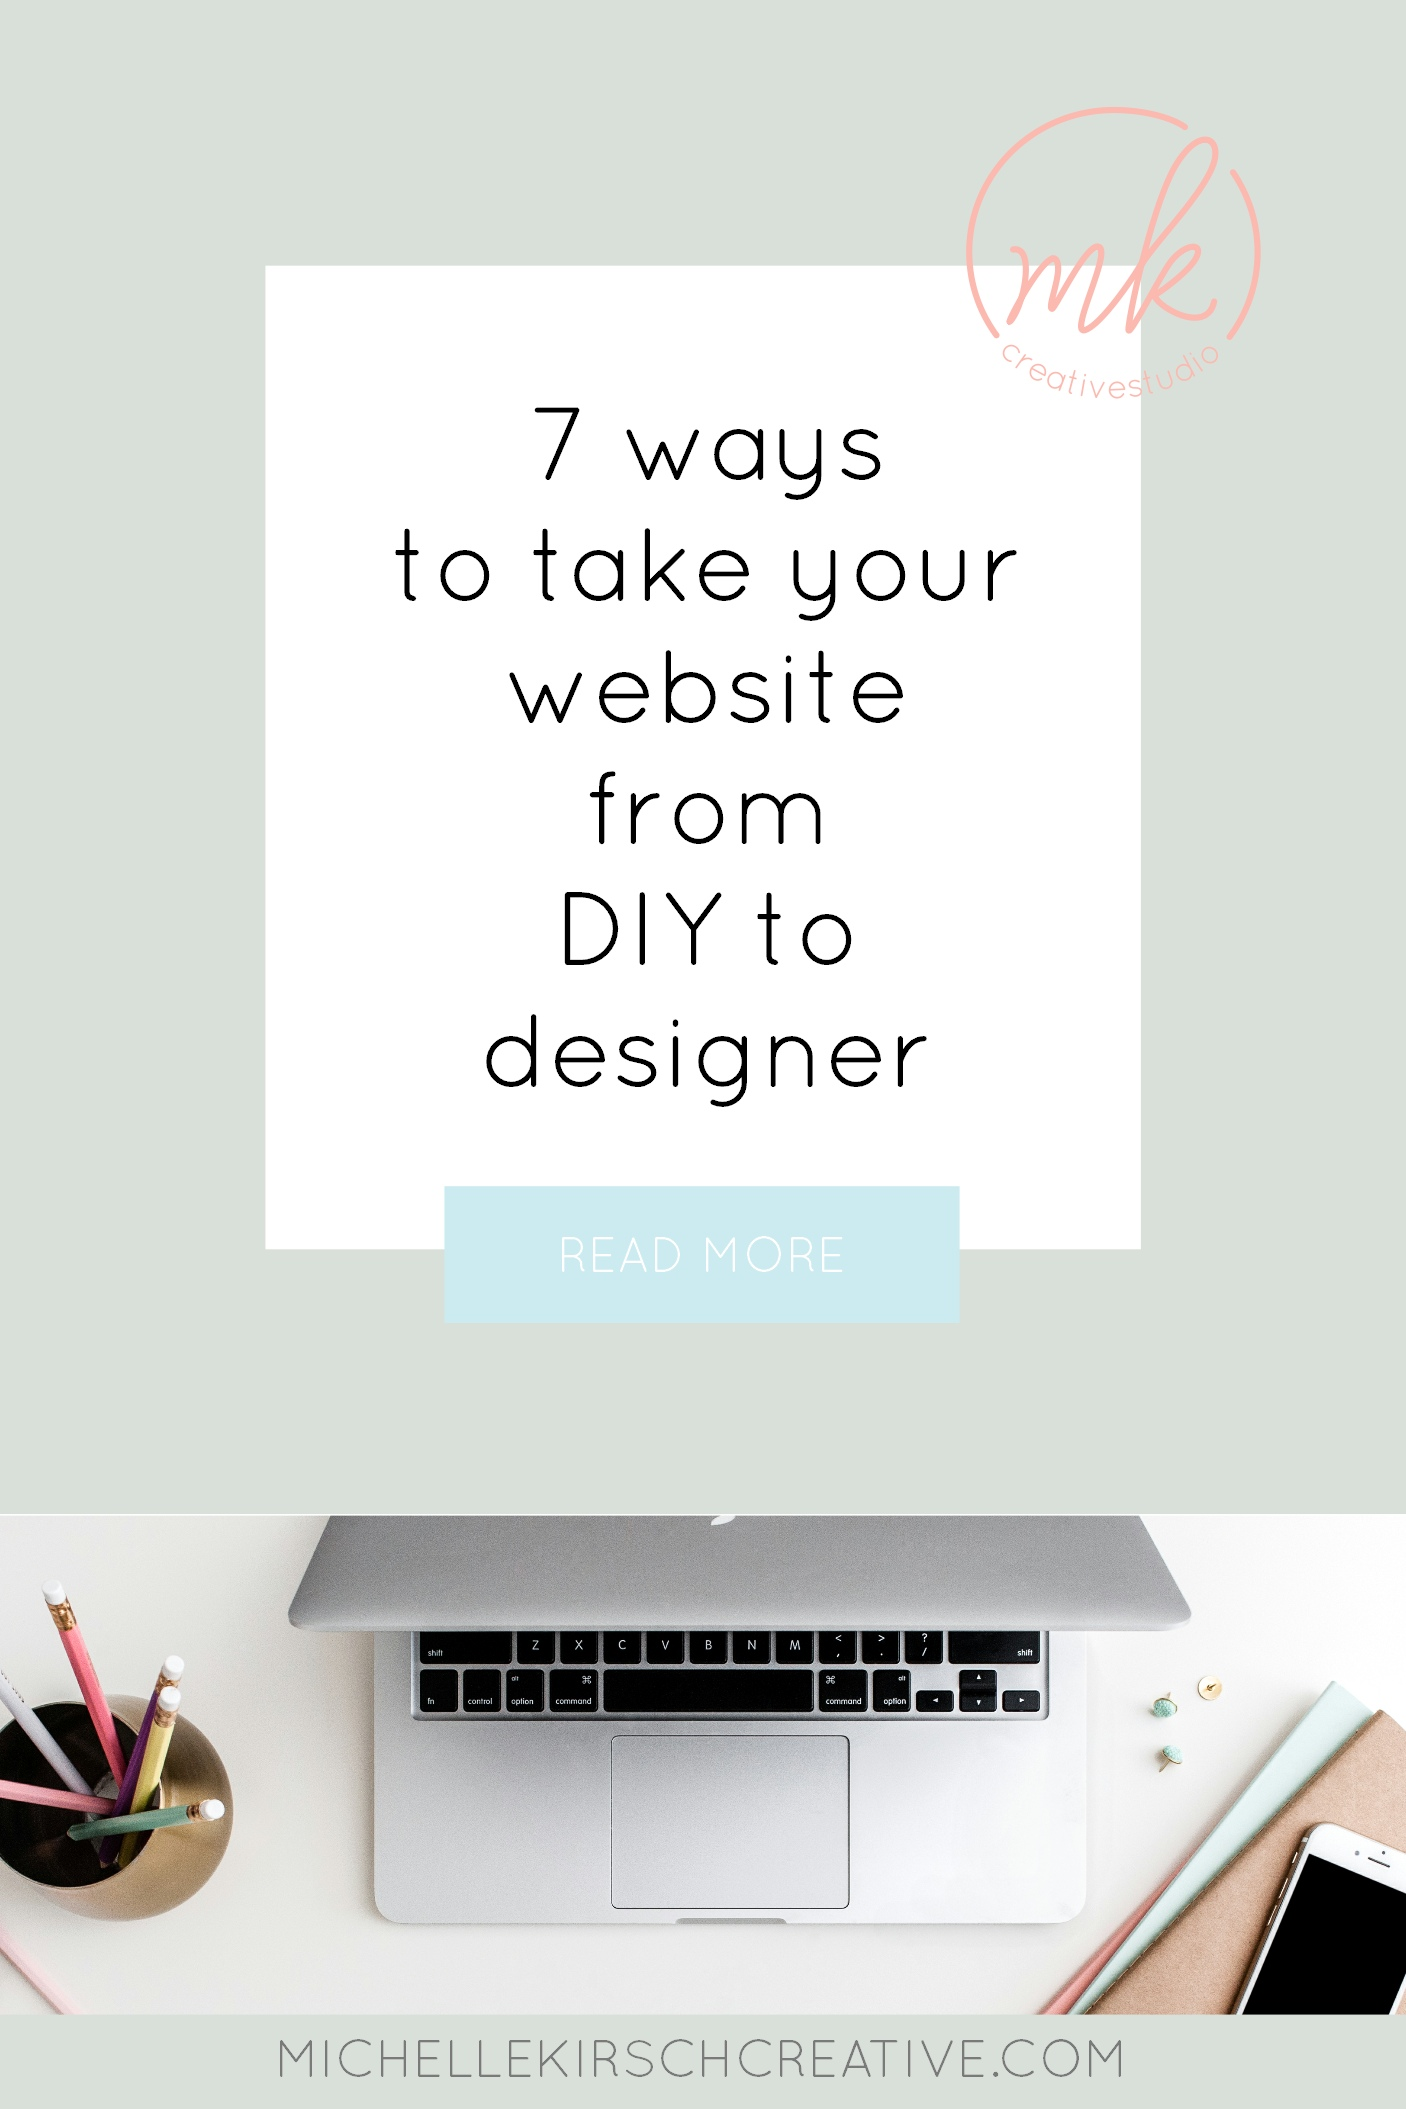 7 ways to take your website from DIY to designer